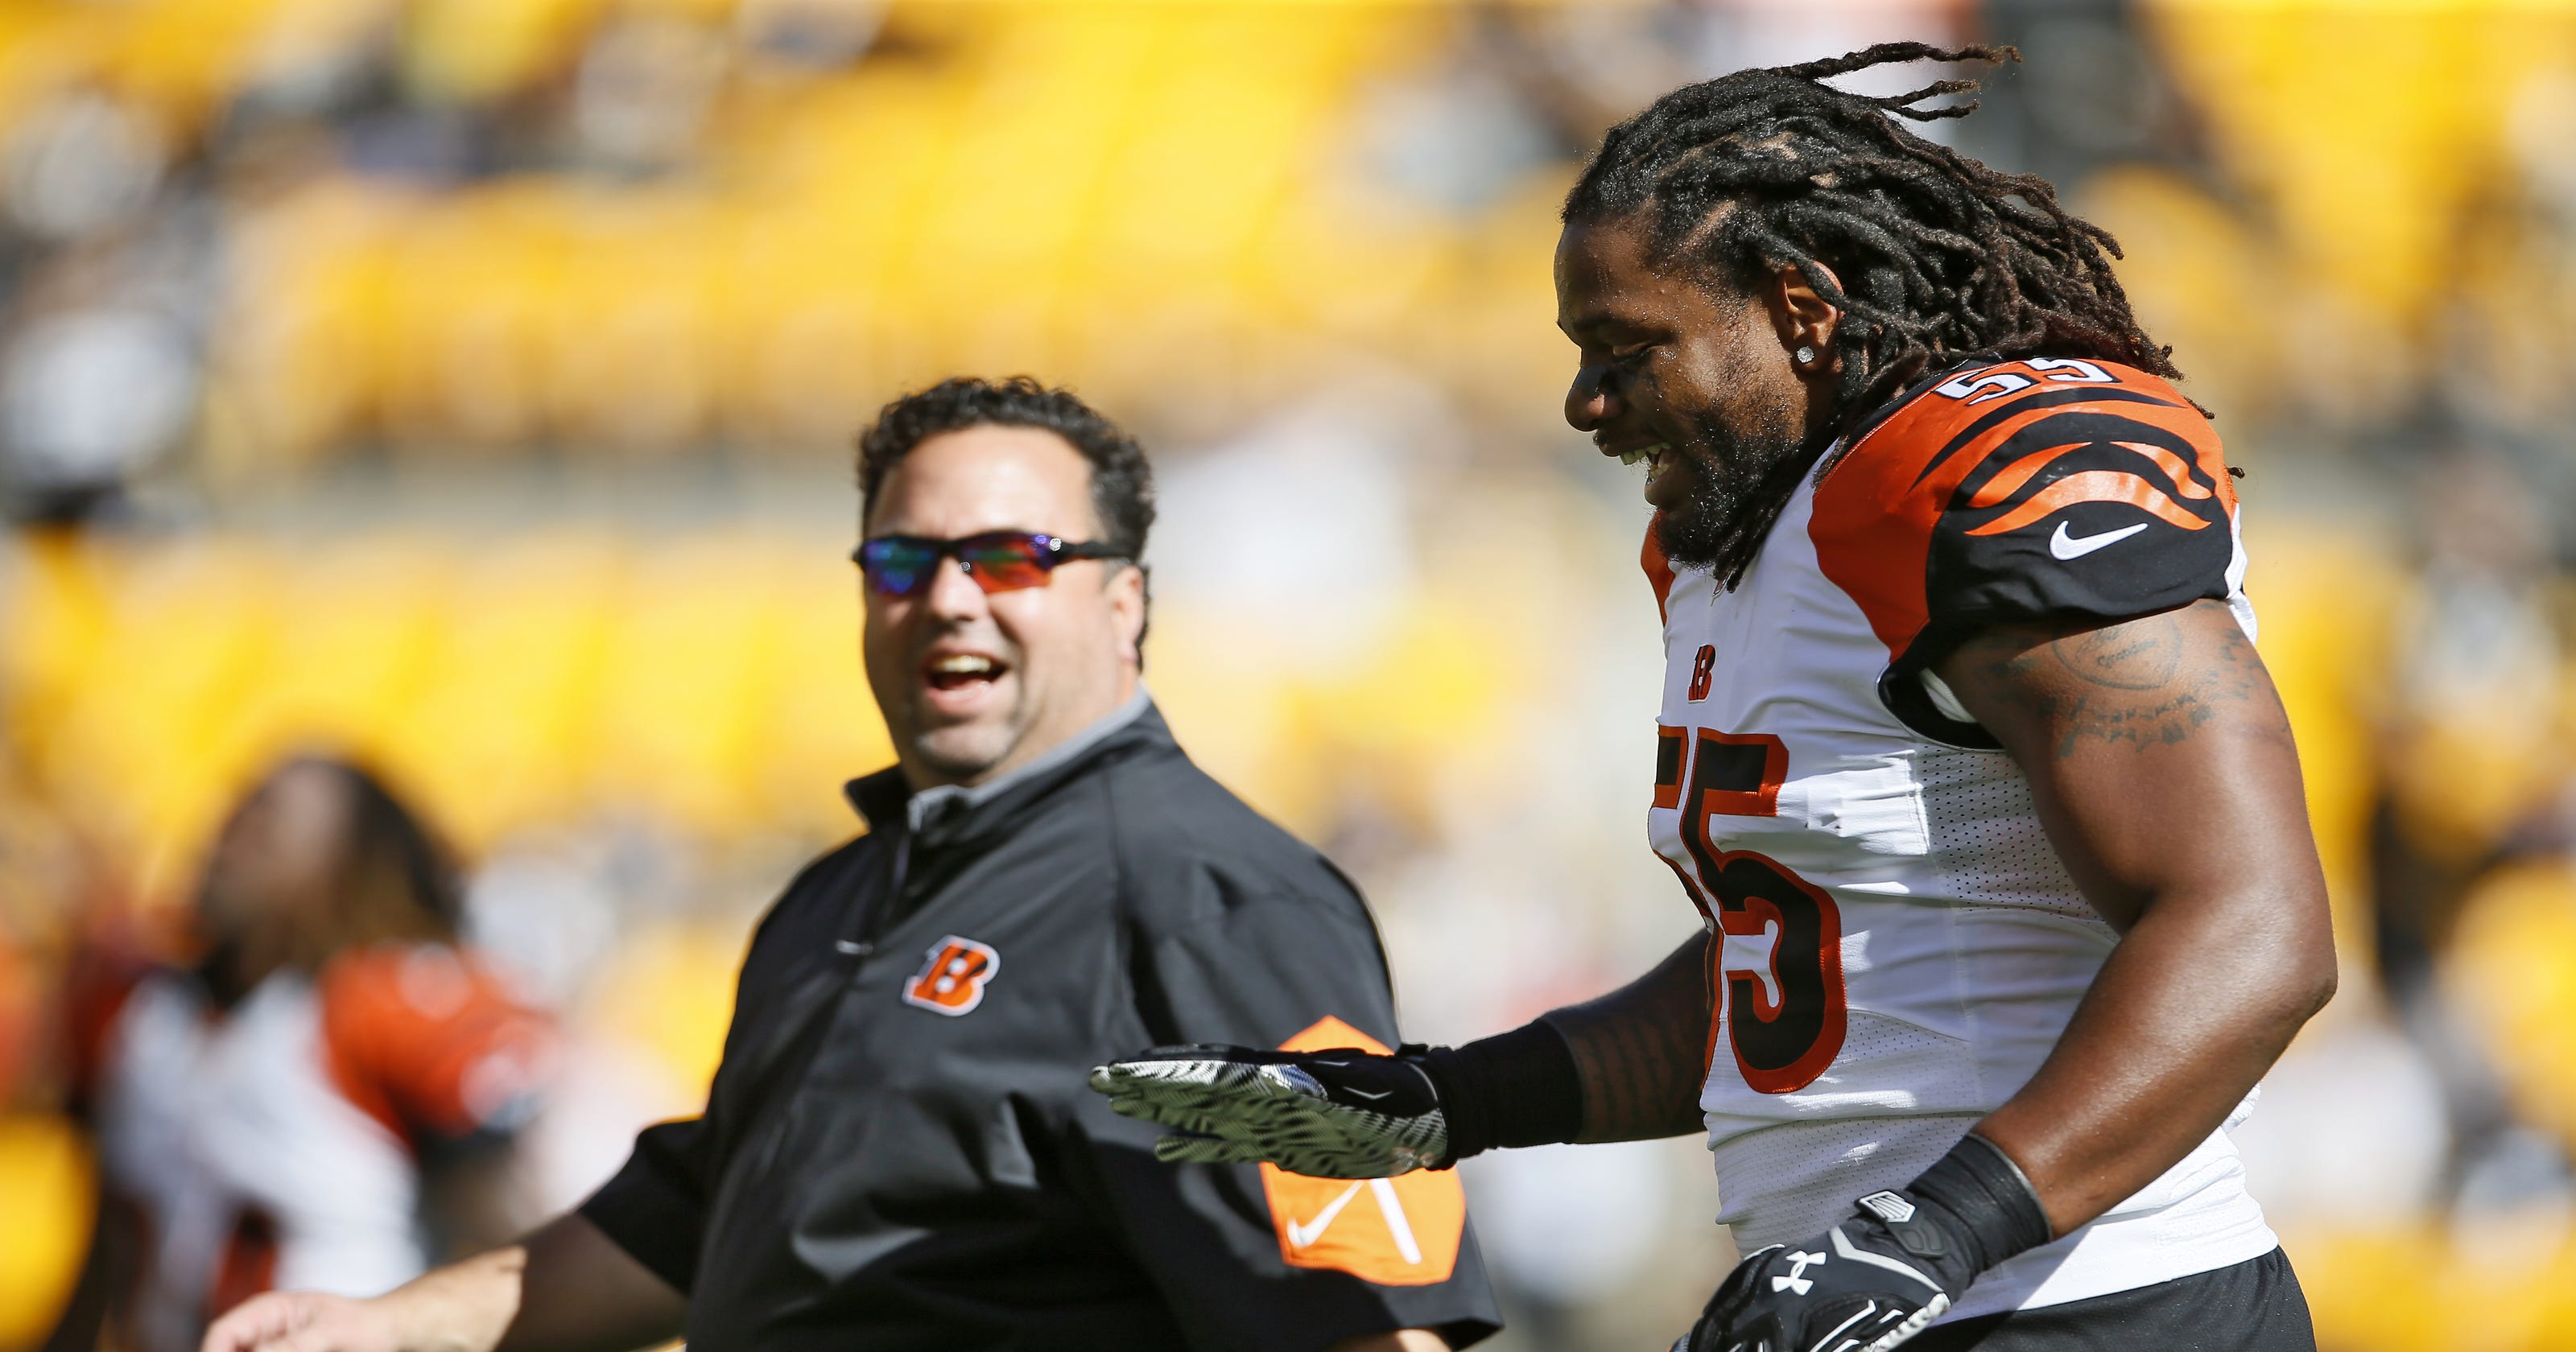 93f5ca0b Former Cincinnati Bengal Vontaze Burfict signs with Oakland Raiders